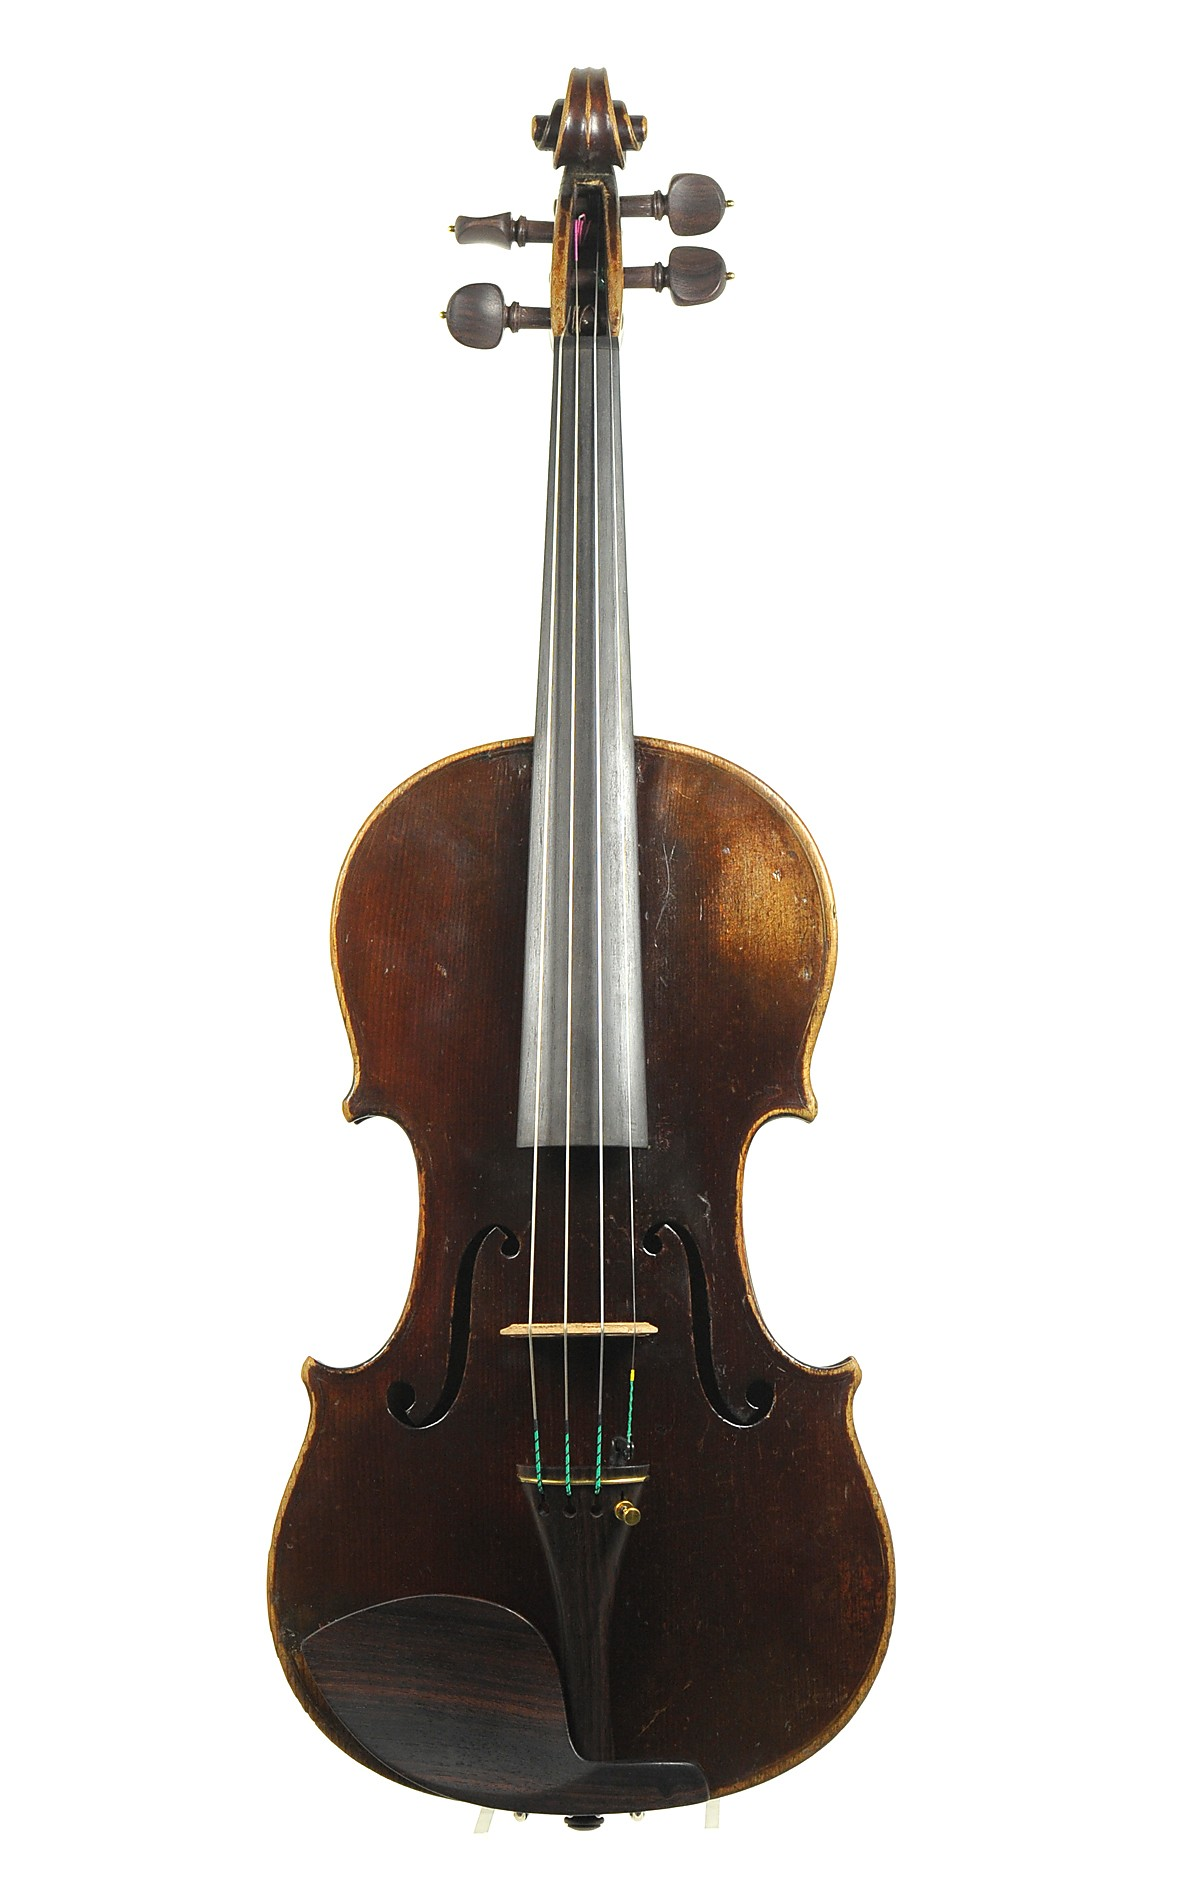 Violin by Jean-Baptiste Vuillaume